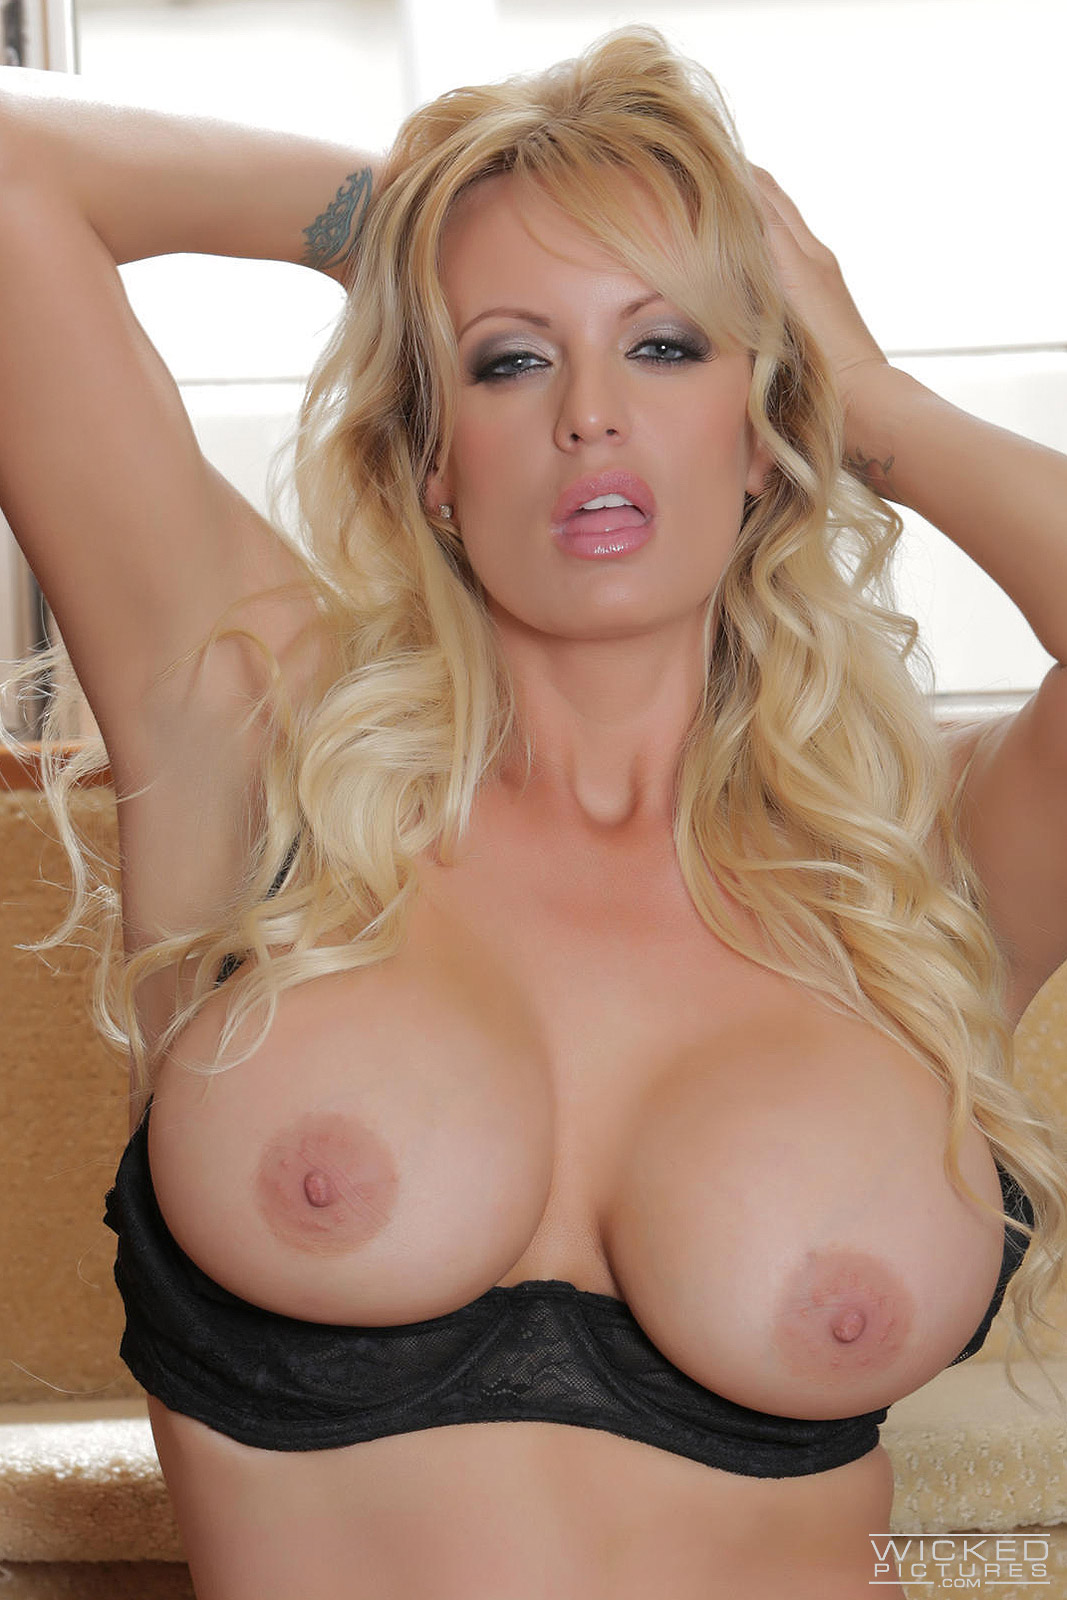 Naked Pics Of Stormy Daniels photo 17